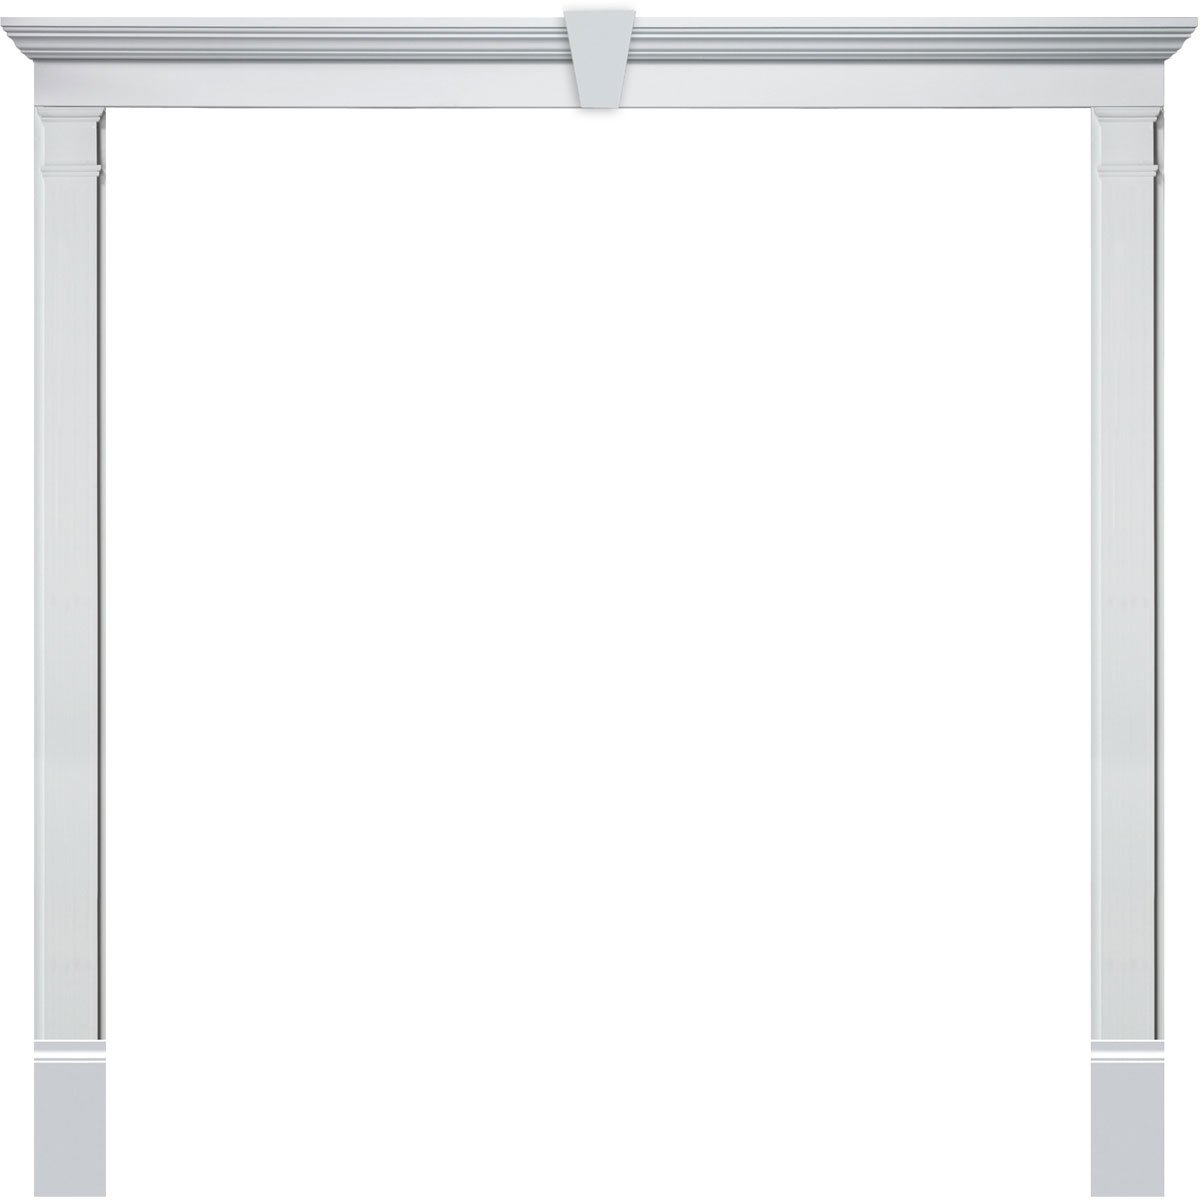 Fypon DSKCRT3068 Single Door Surround Kit with 50''W x 4 1/2''H Crosshead with Keystone & 5 1/4''W Plain Pilasters, White